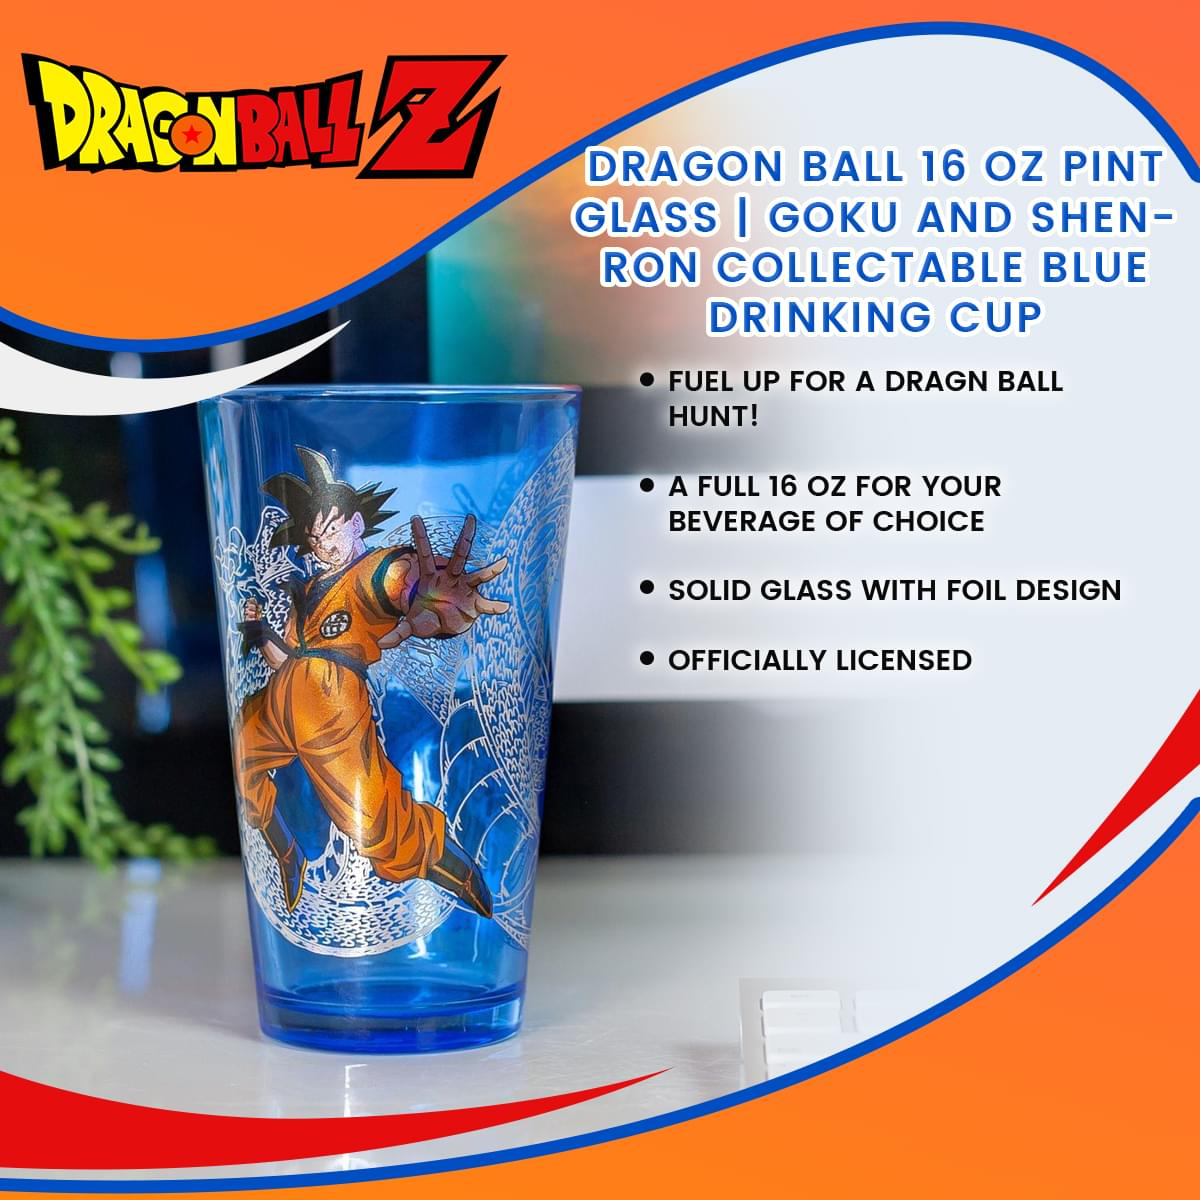 Dragon Ball 16 Oz Pint Glass Goku and Shenron Collectable Blue Drinking Cup